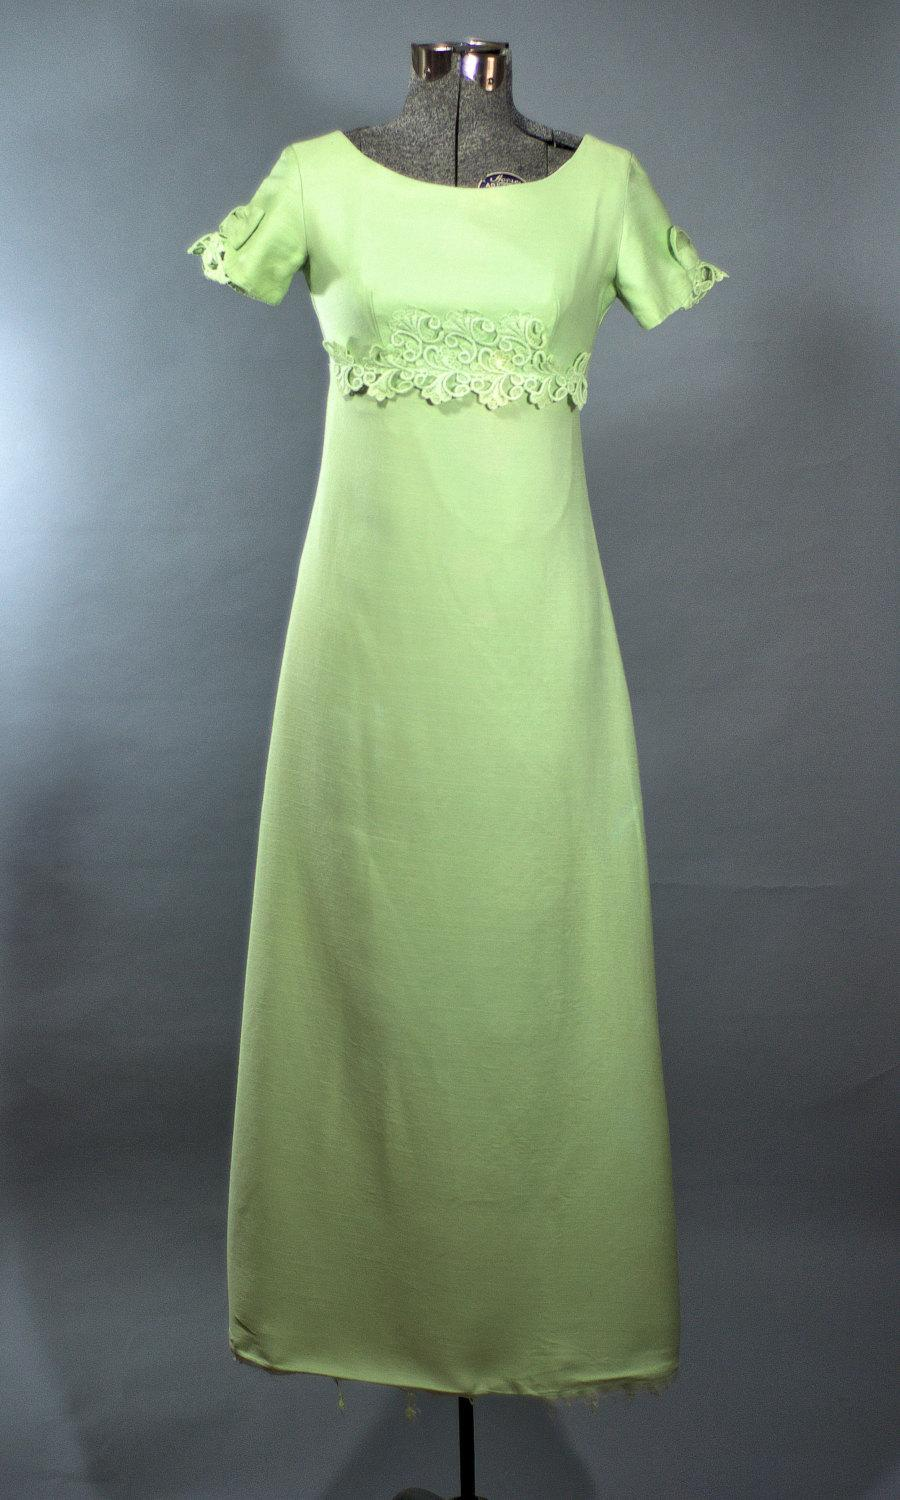 e08532ac0b0e Vintage 1960's Maxi Dress. 60's Regency Empire Waist Floor Length Dress Made  in USA